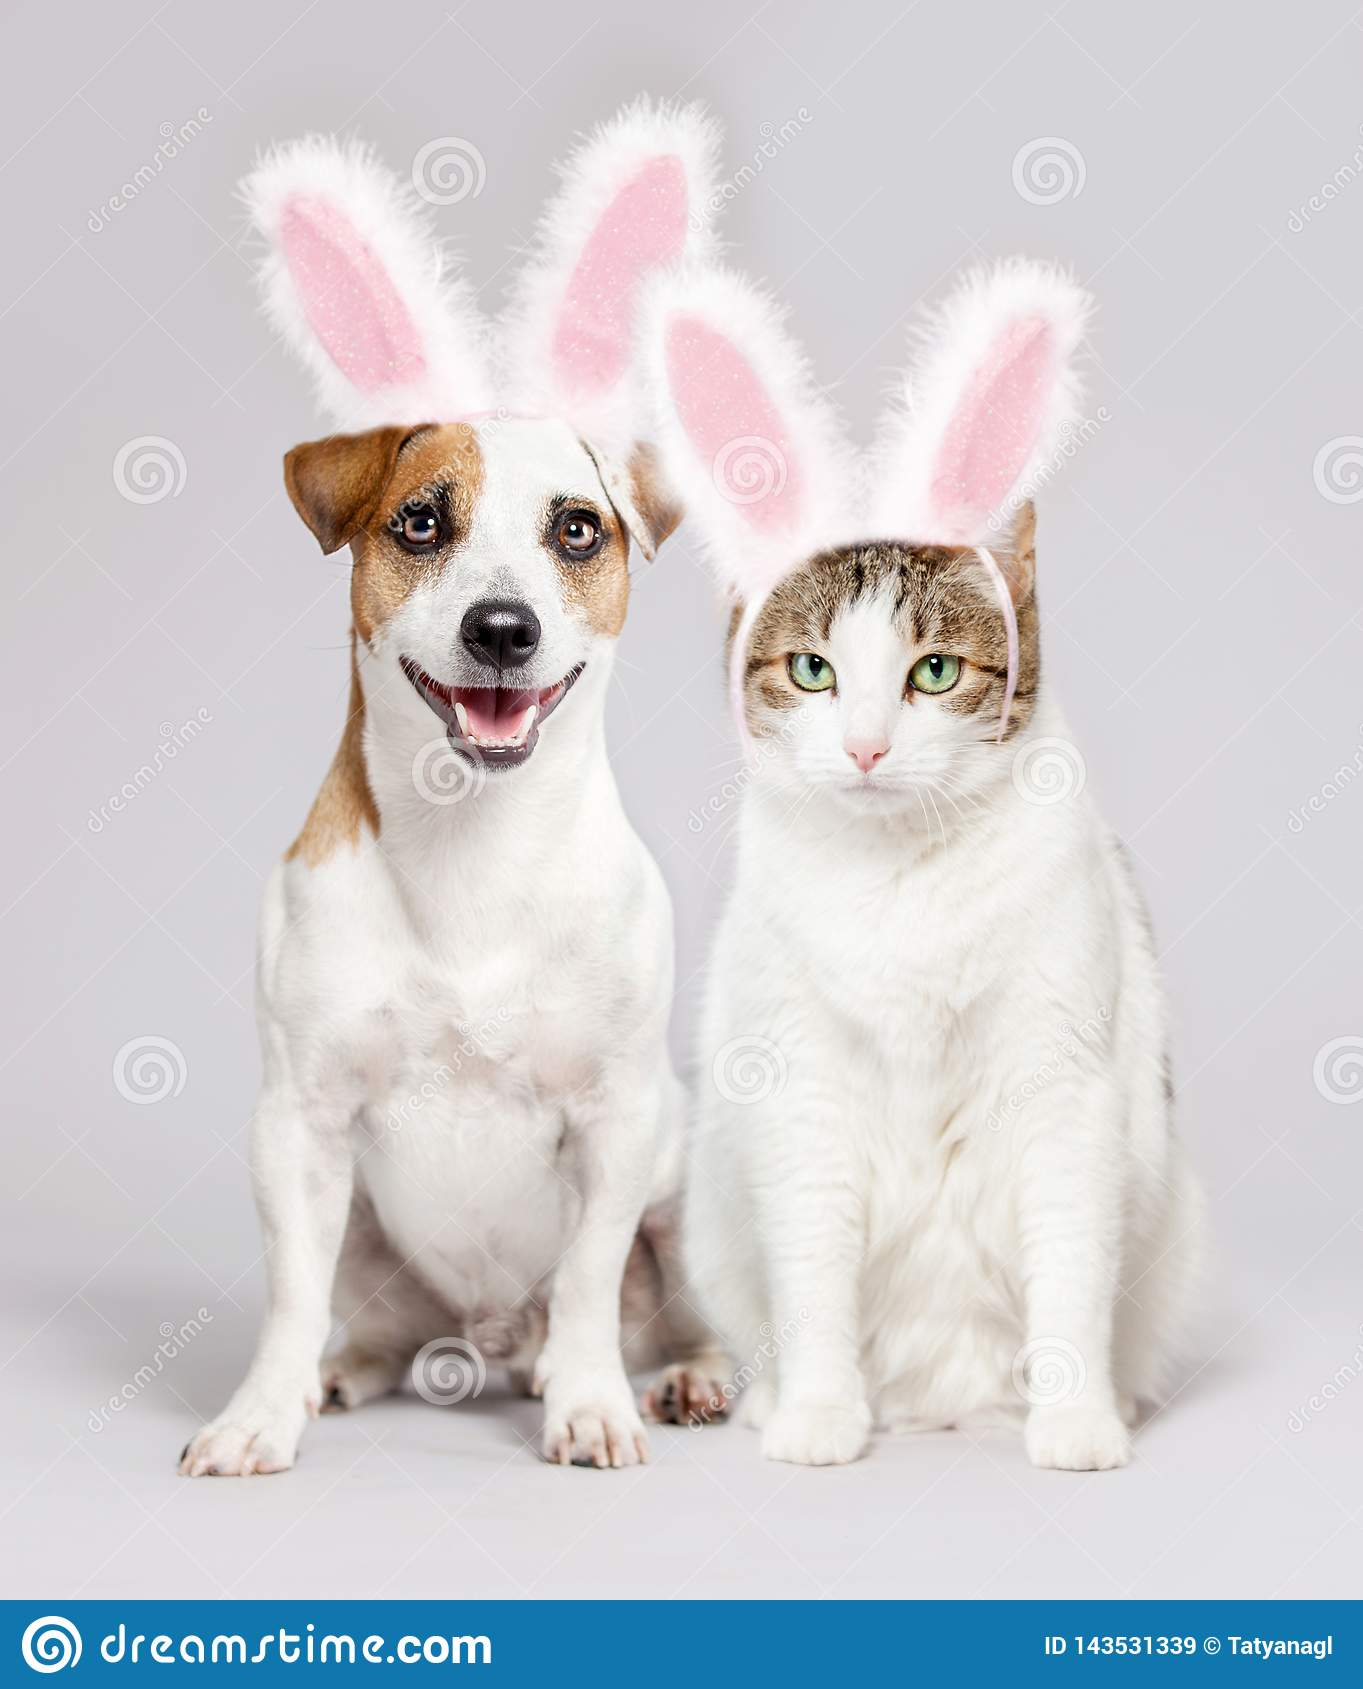 Cat And Dog Wearing Easter Bunny Ears Peeking Out Stock Image Image Of Kitten Holiday 143531339